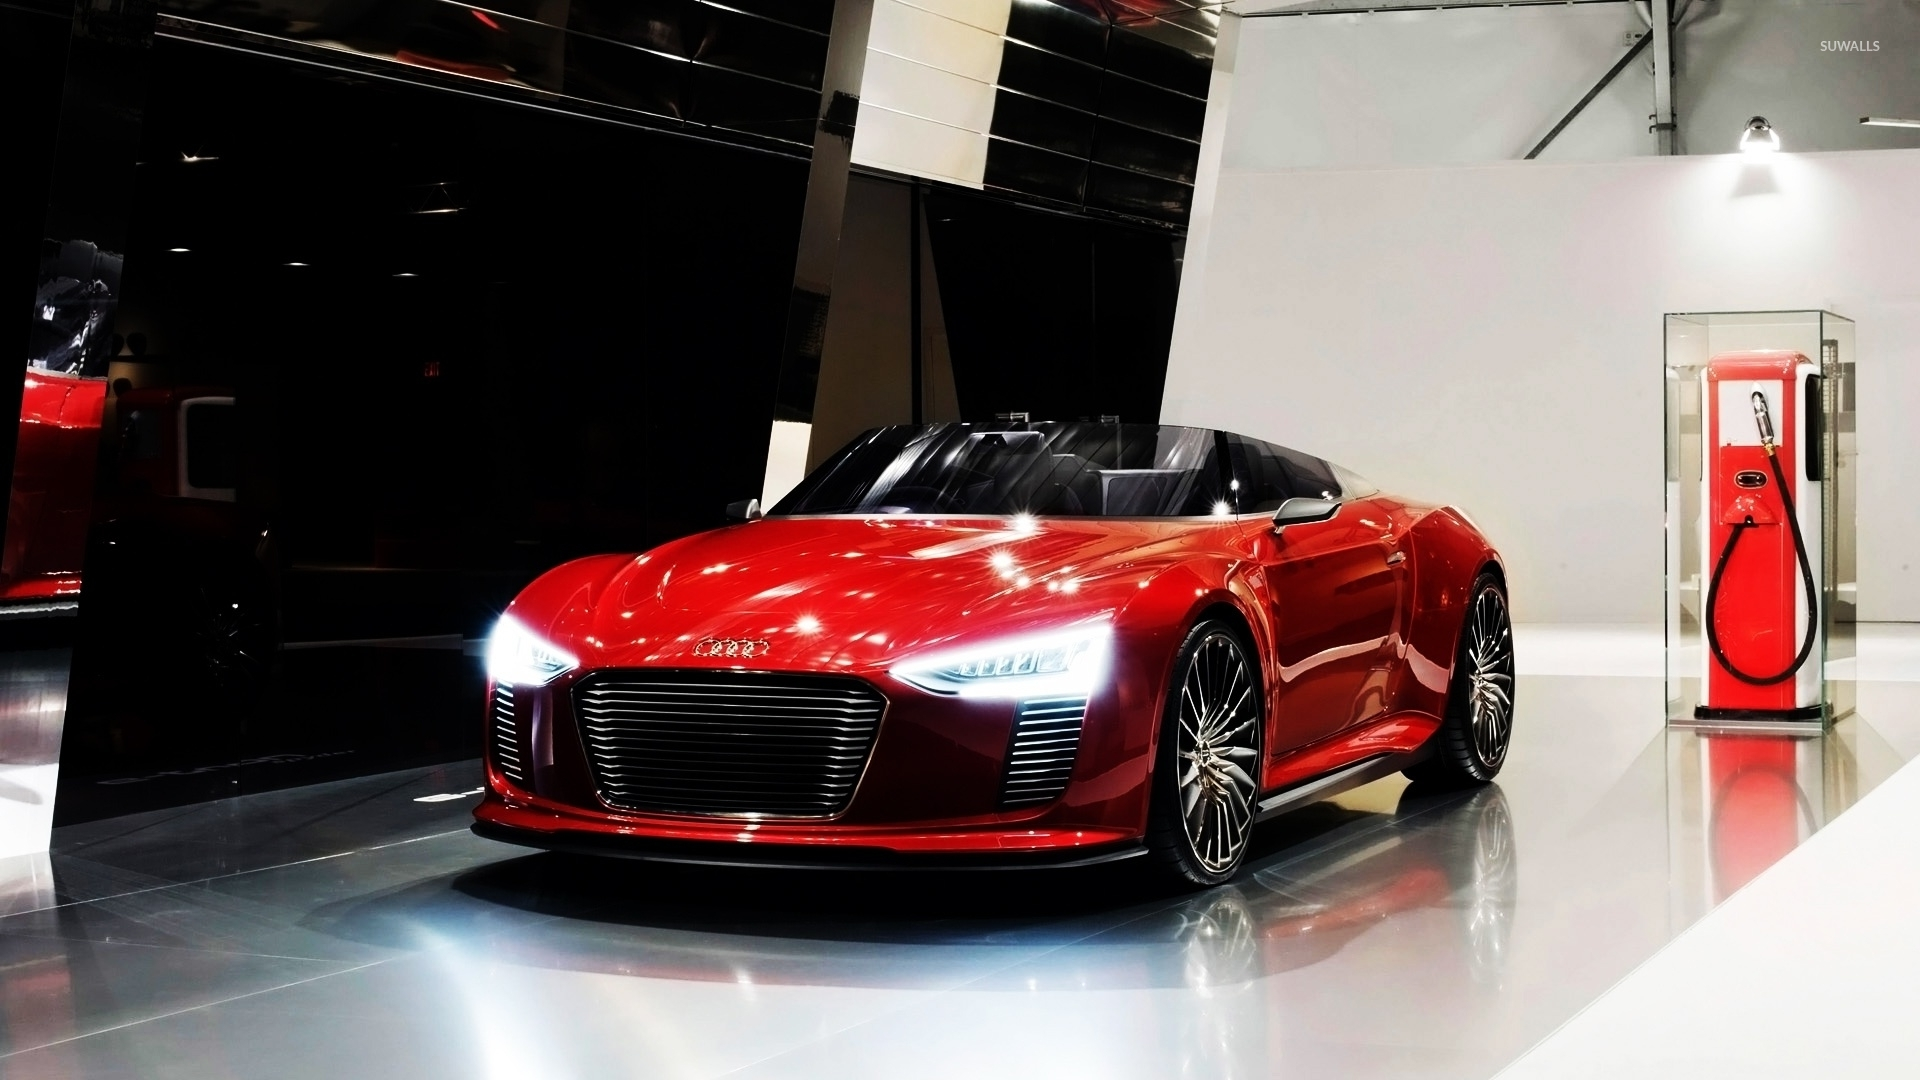 Red Audi E Tron Convertible Wallpaper